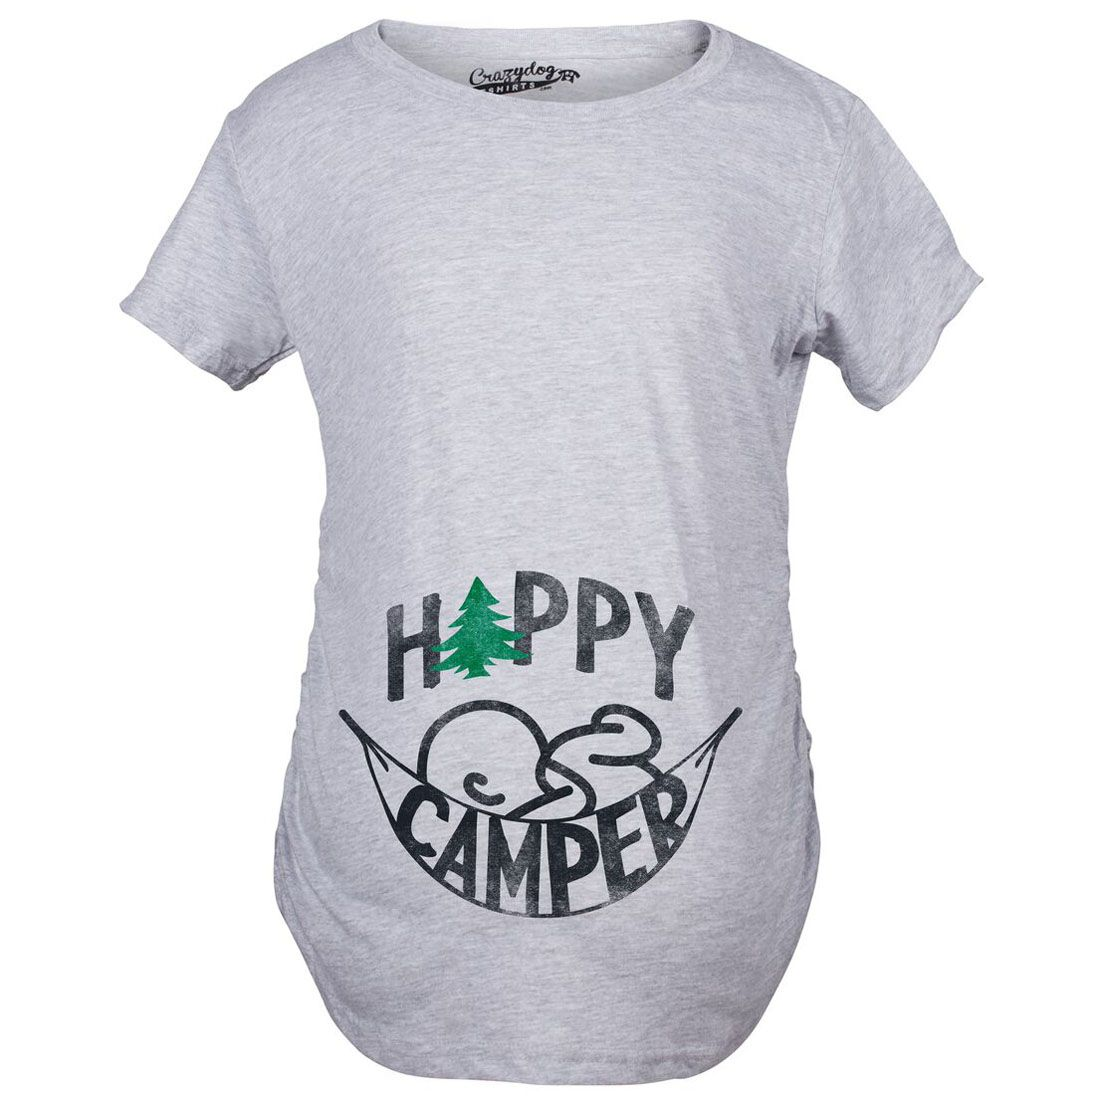 34ca96701 Maternity Happy Camper Funny Camping Baby Bump Pregnancy Announcement T  shirt | CrazyDog Tshirts